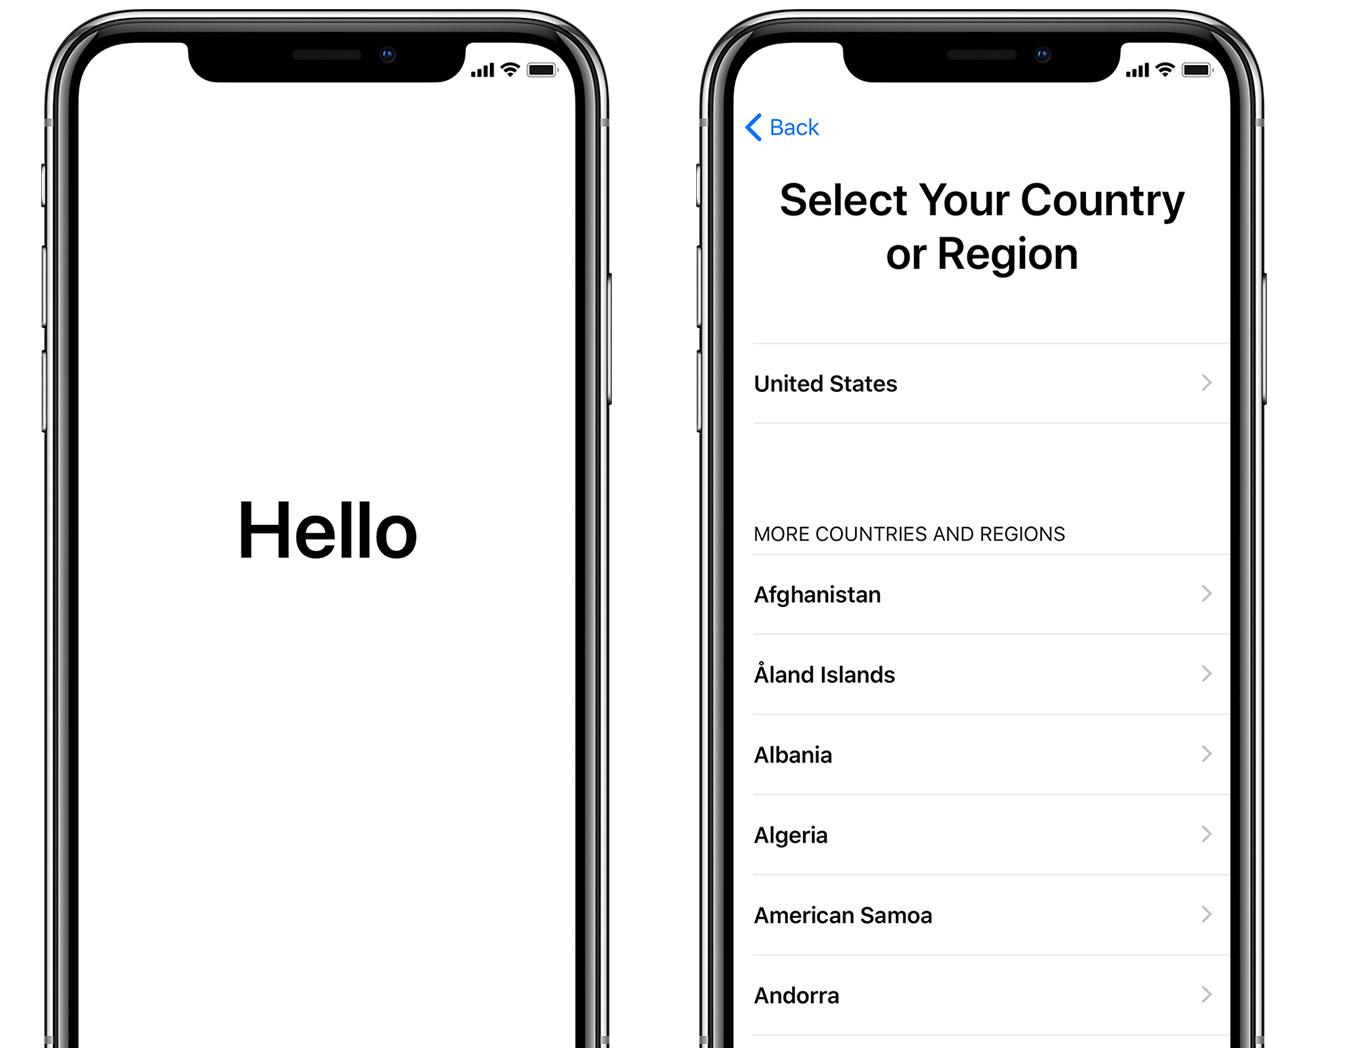 Hello screen and Select Your Country or Region screen on iPhone